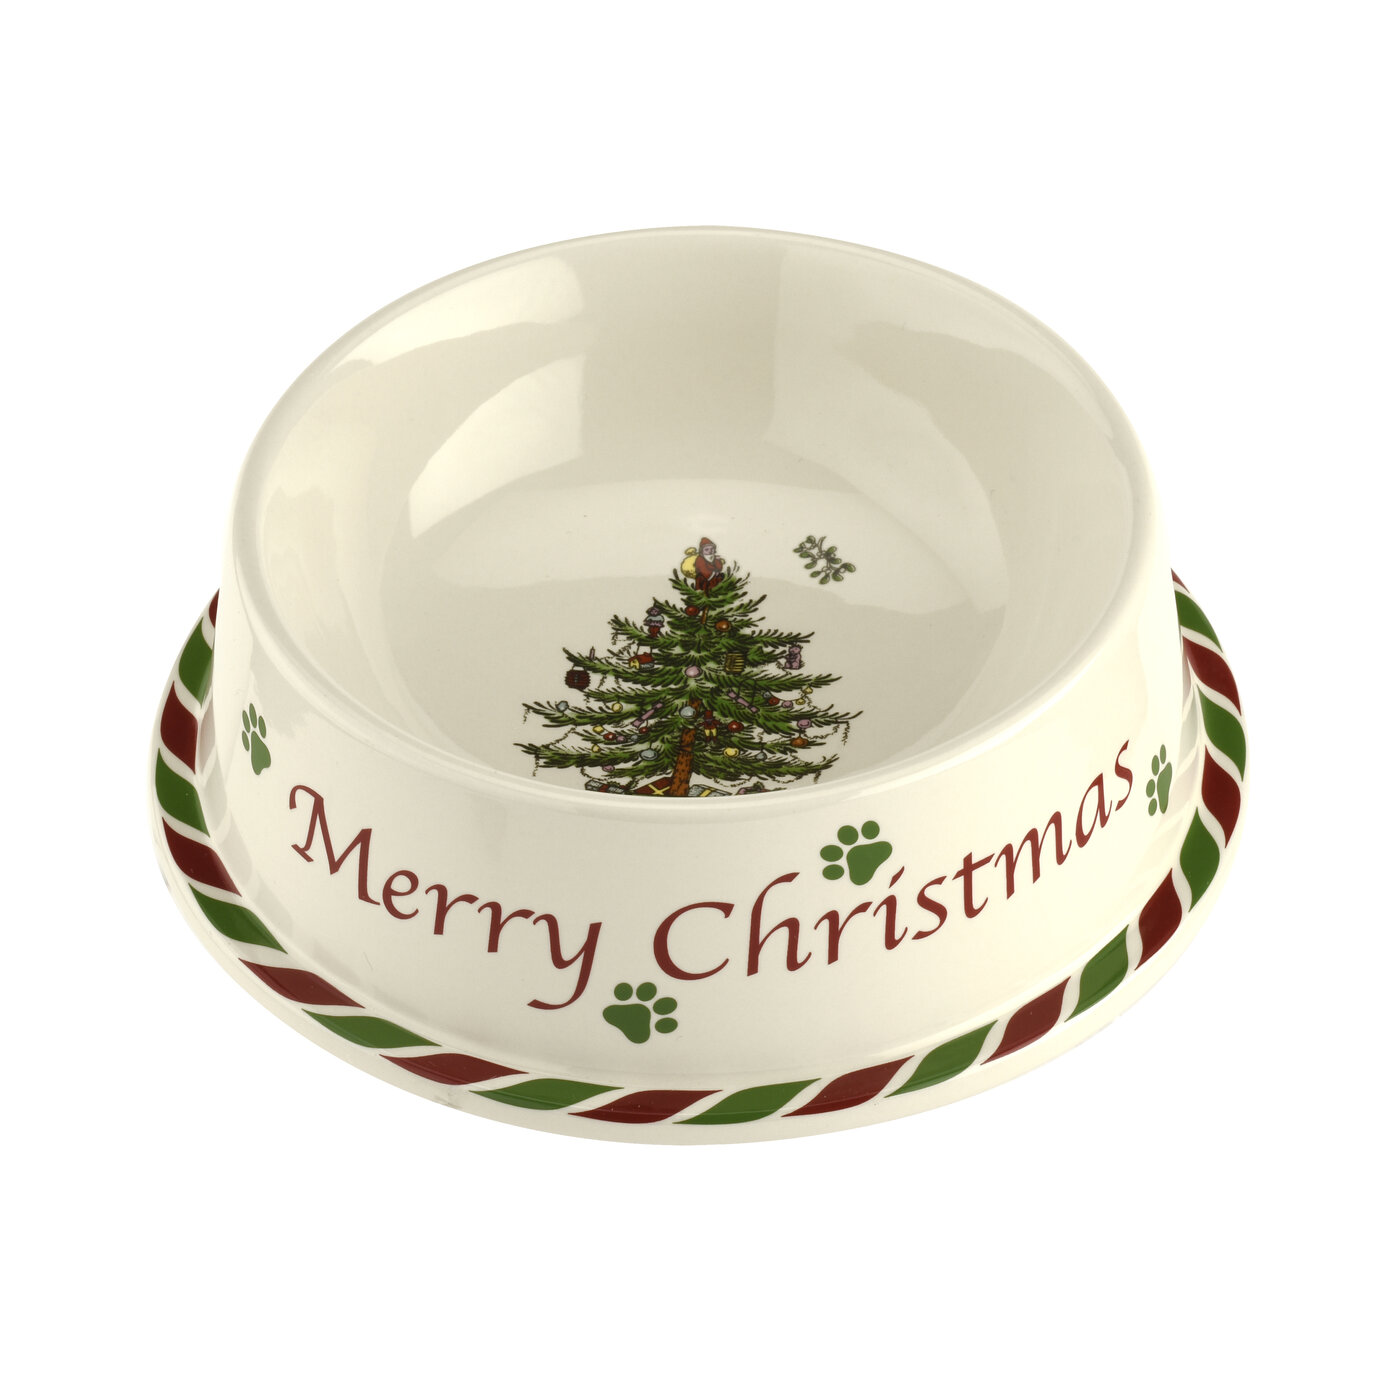 Spode Christmas Tree  Pet Bowl 7 Inch image number 0